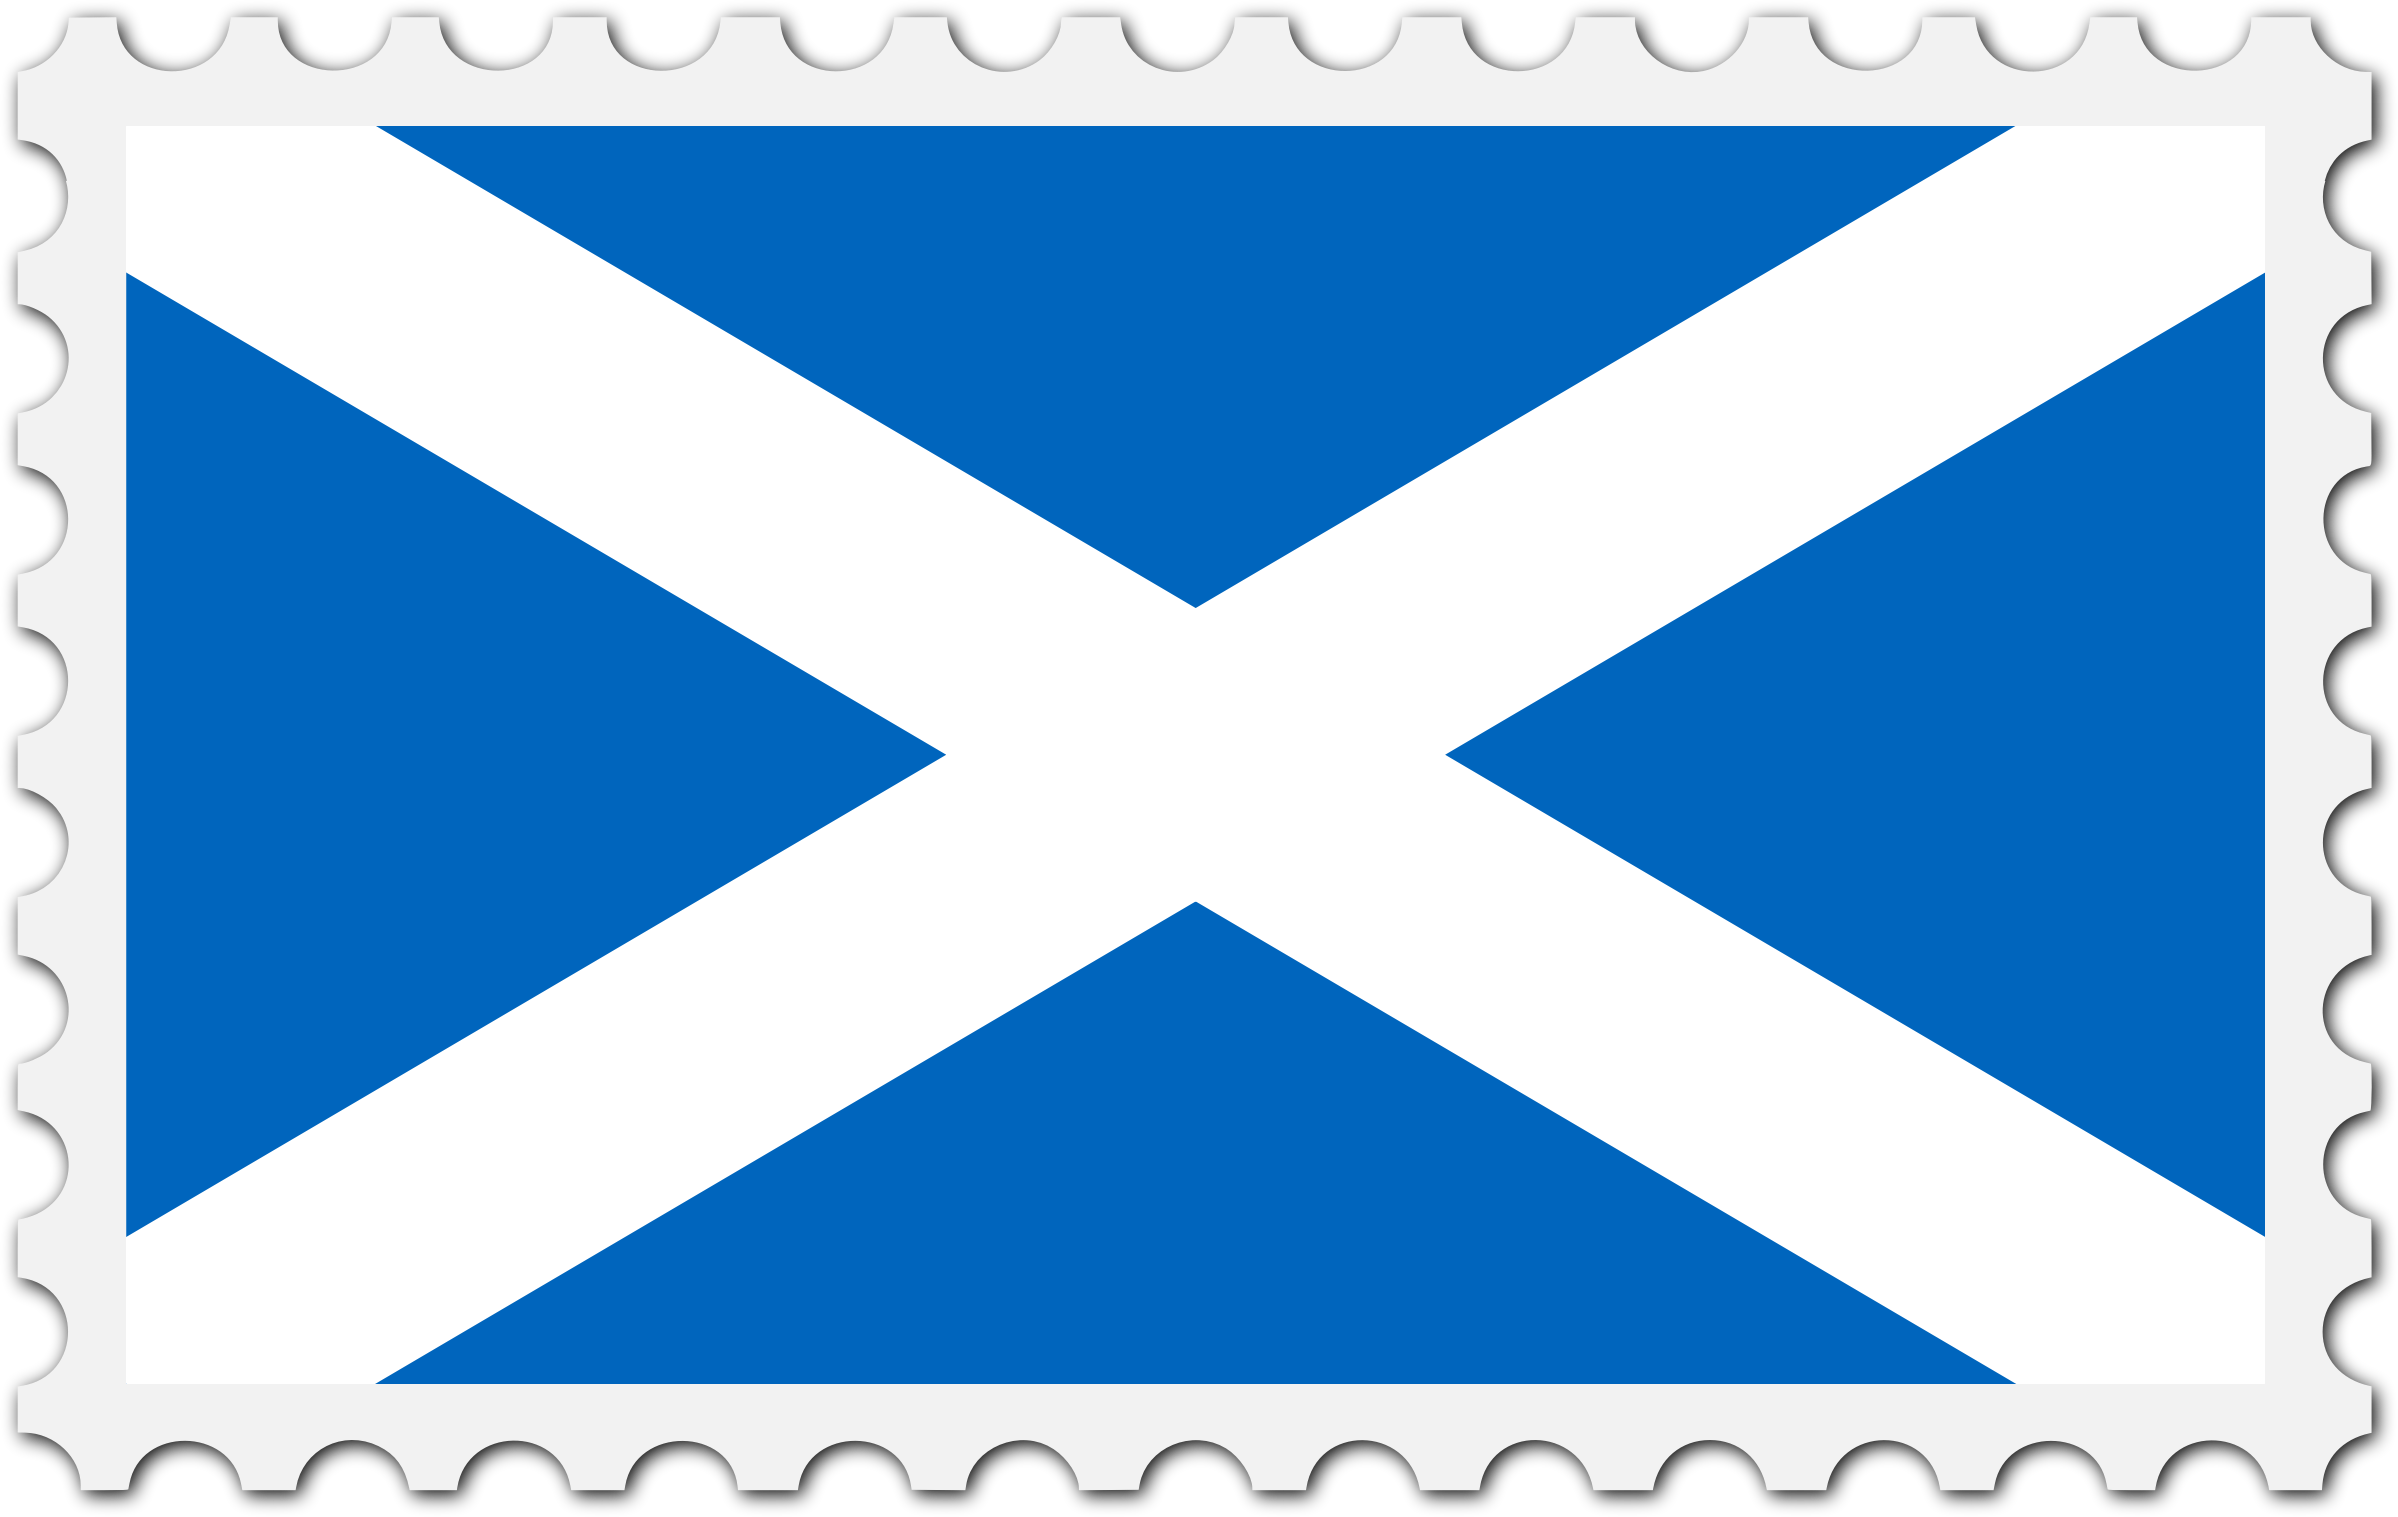 Scotland flag stamp by Firkin